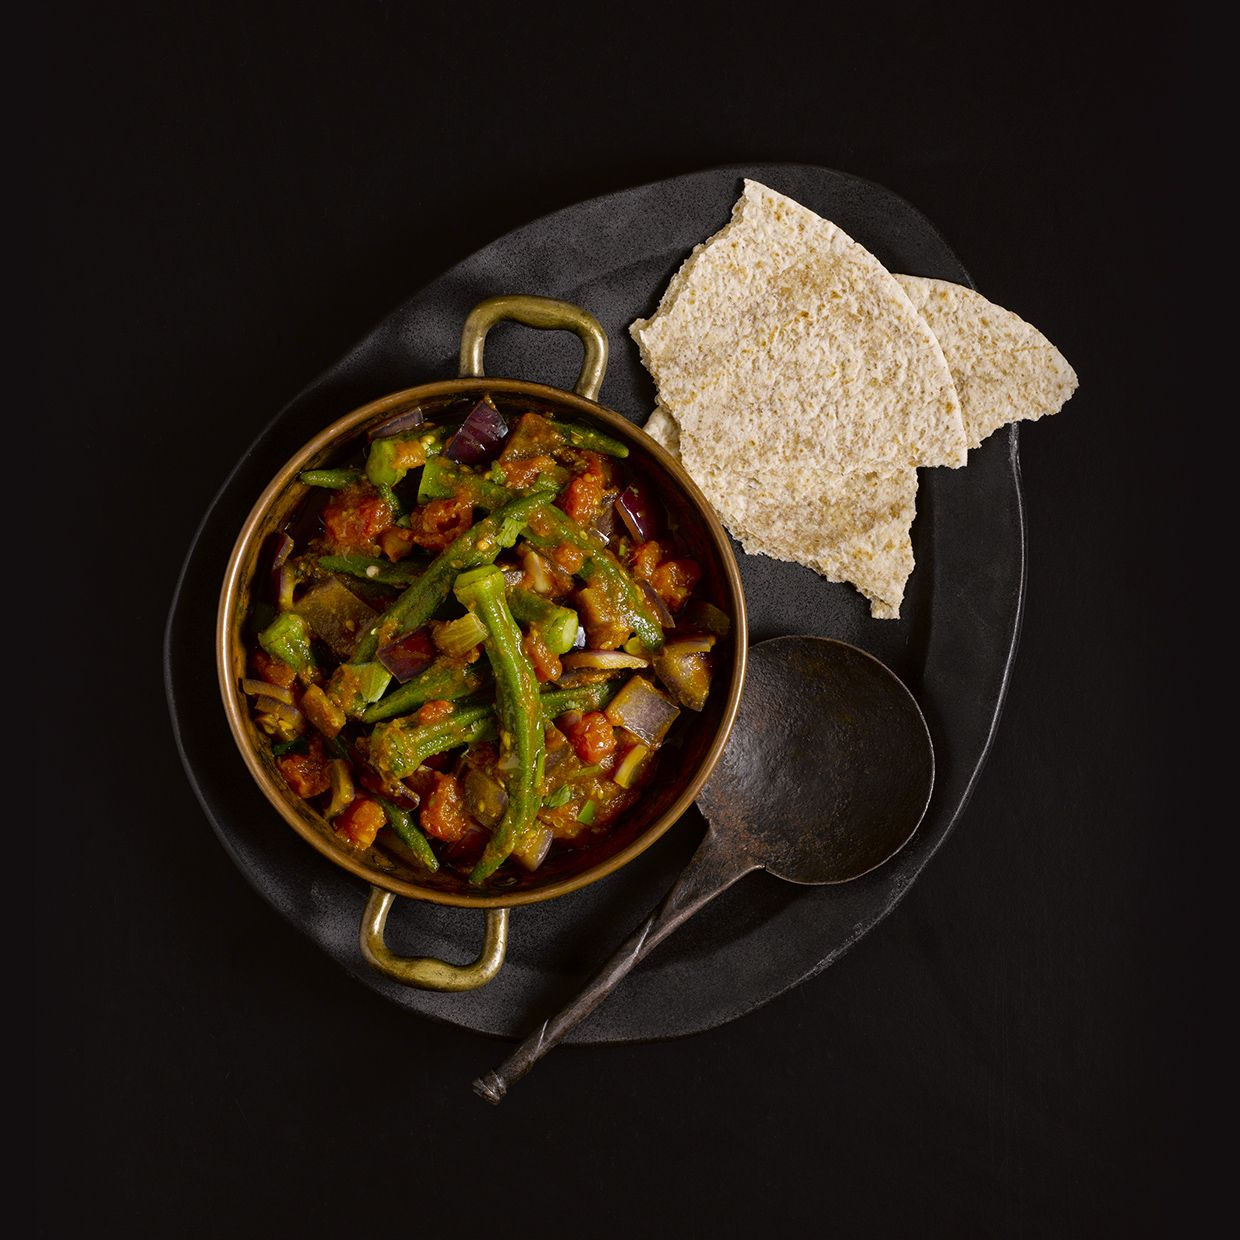 Ktc bhindi bhajee see our website for full recipes ktc curry club ktc bhindi bhajee see our website for full recipes forumfinder Image collections